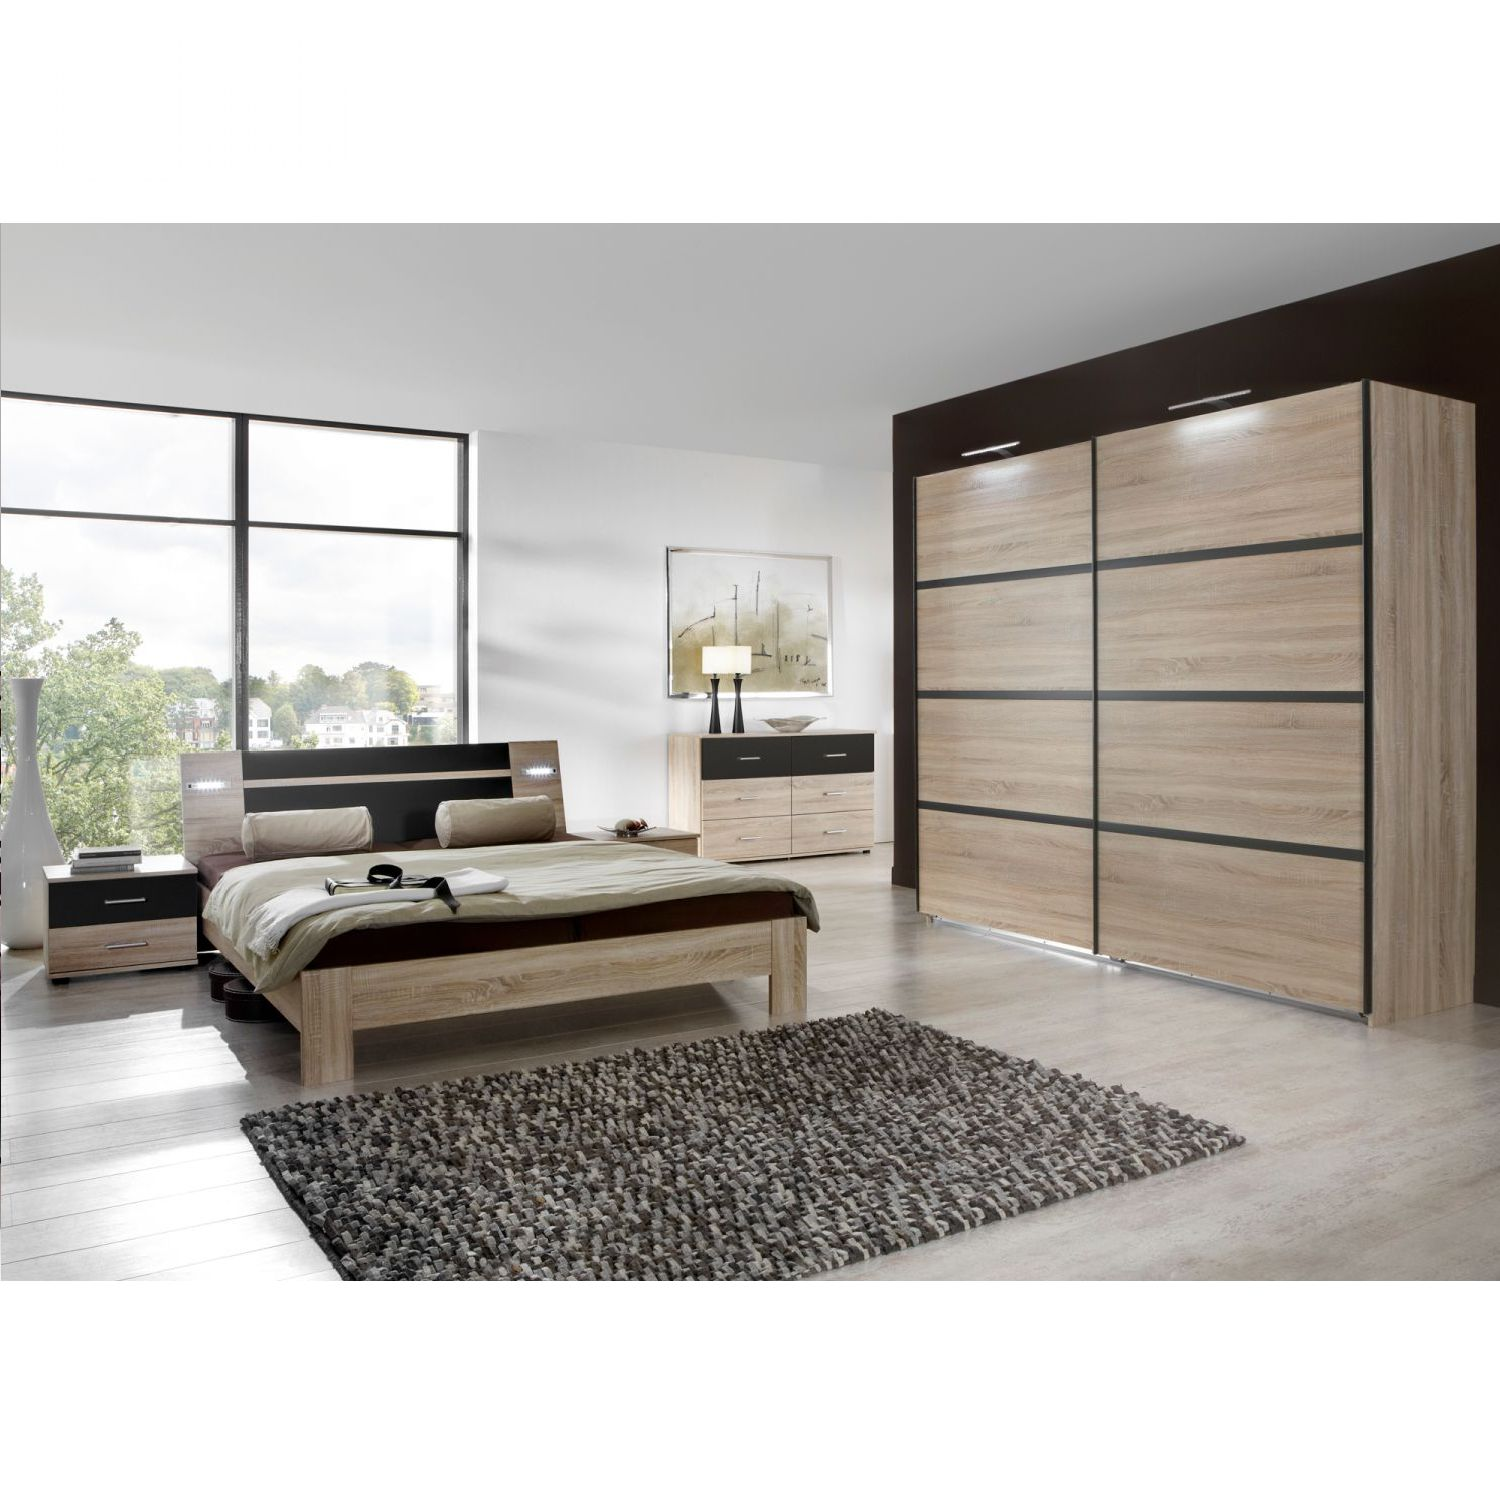 schlafzimmerset lacovia 4 teilig eiche s gerau lava 140x200cm wimex g nstig online kaufen. Black Bedroom Furniture Sets. Home Design Ideas